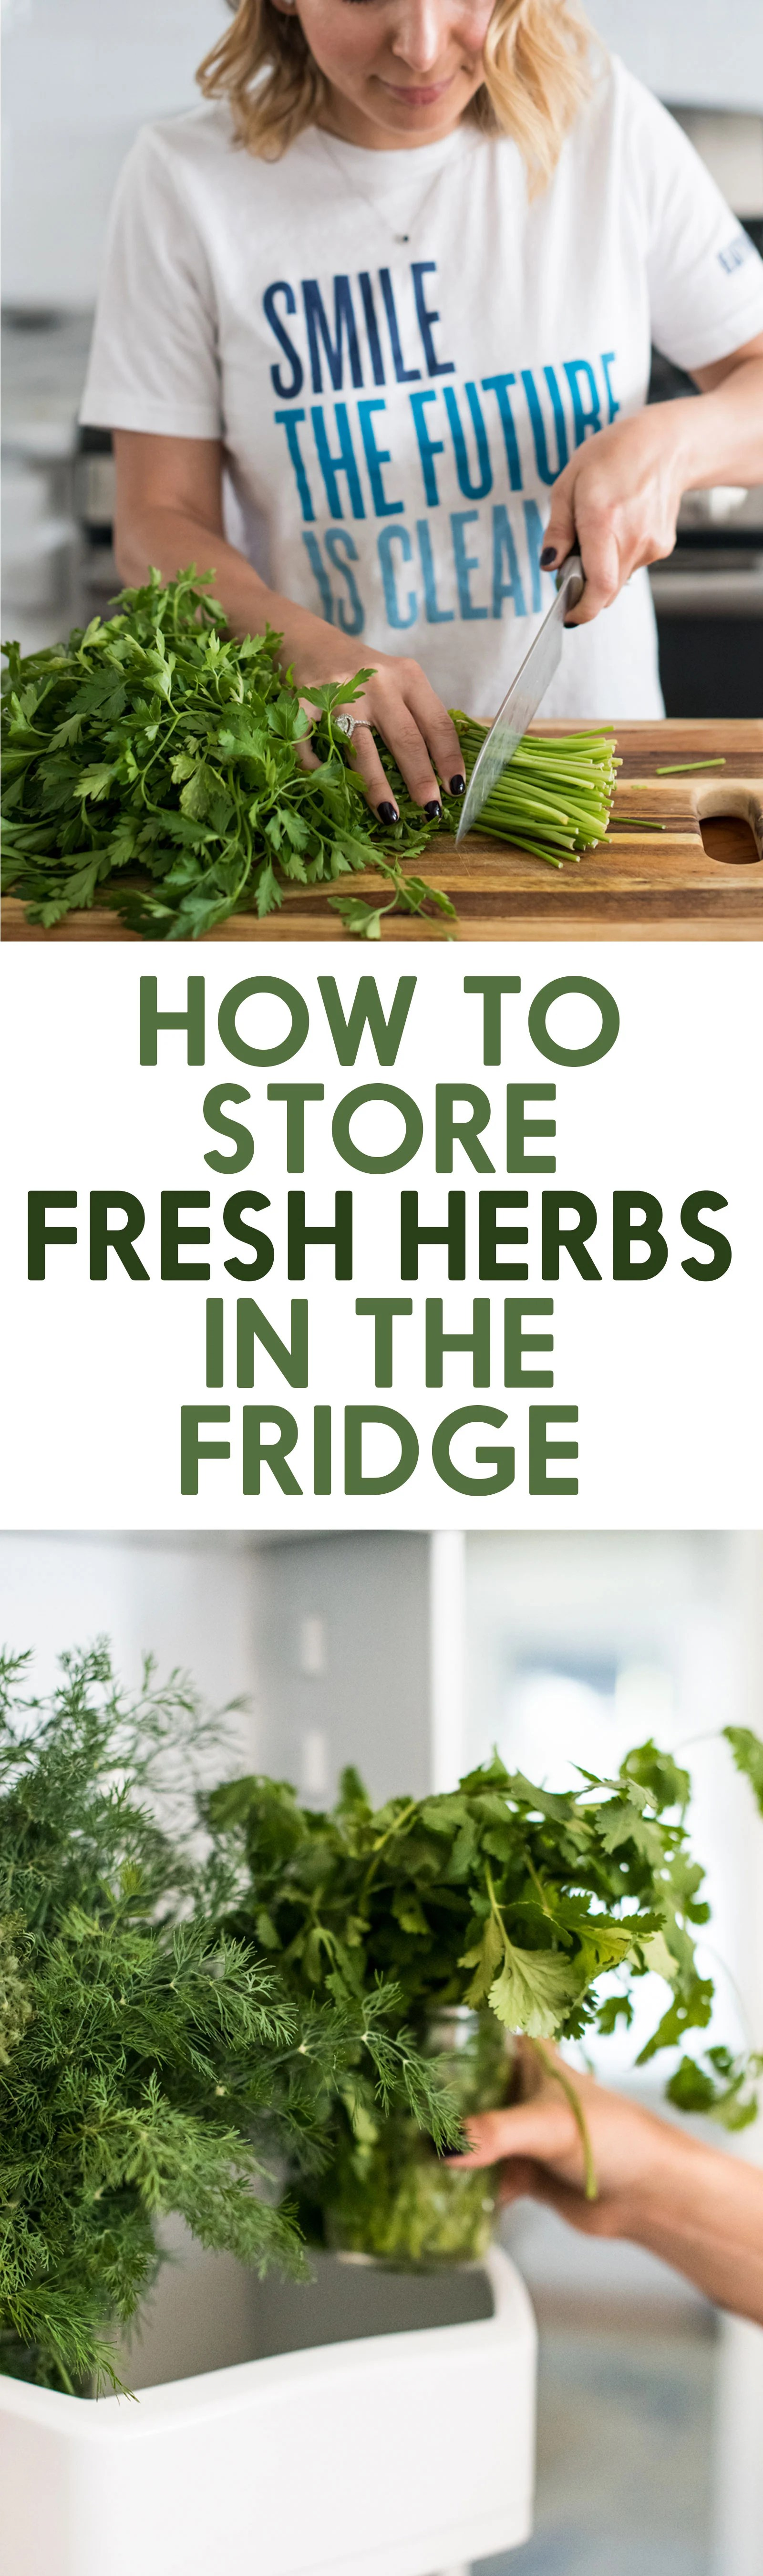 How to Store Fresh Herbs in the Refrigerator - Lexi's ...